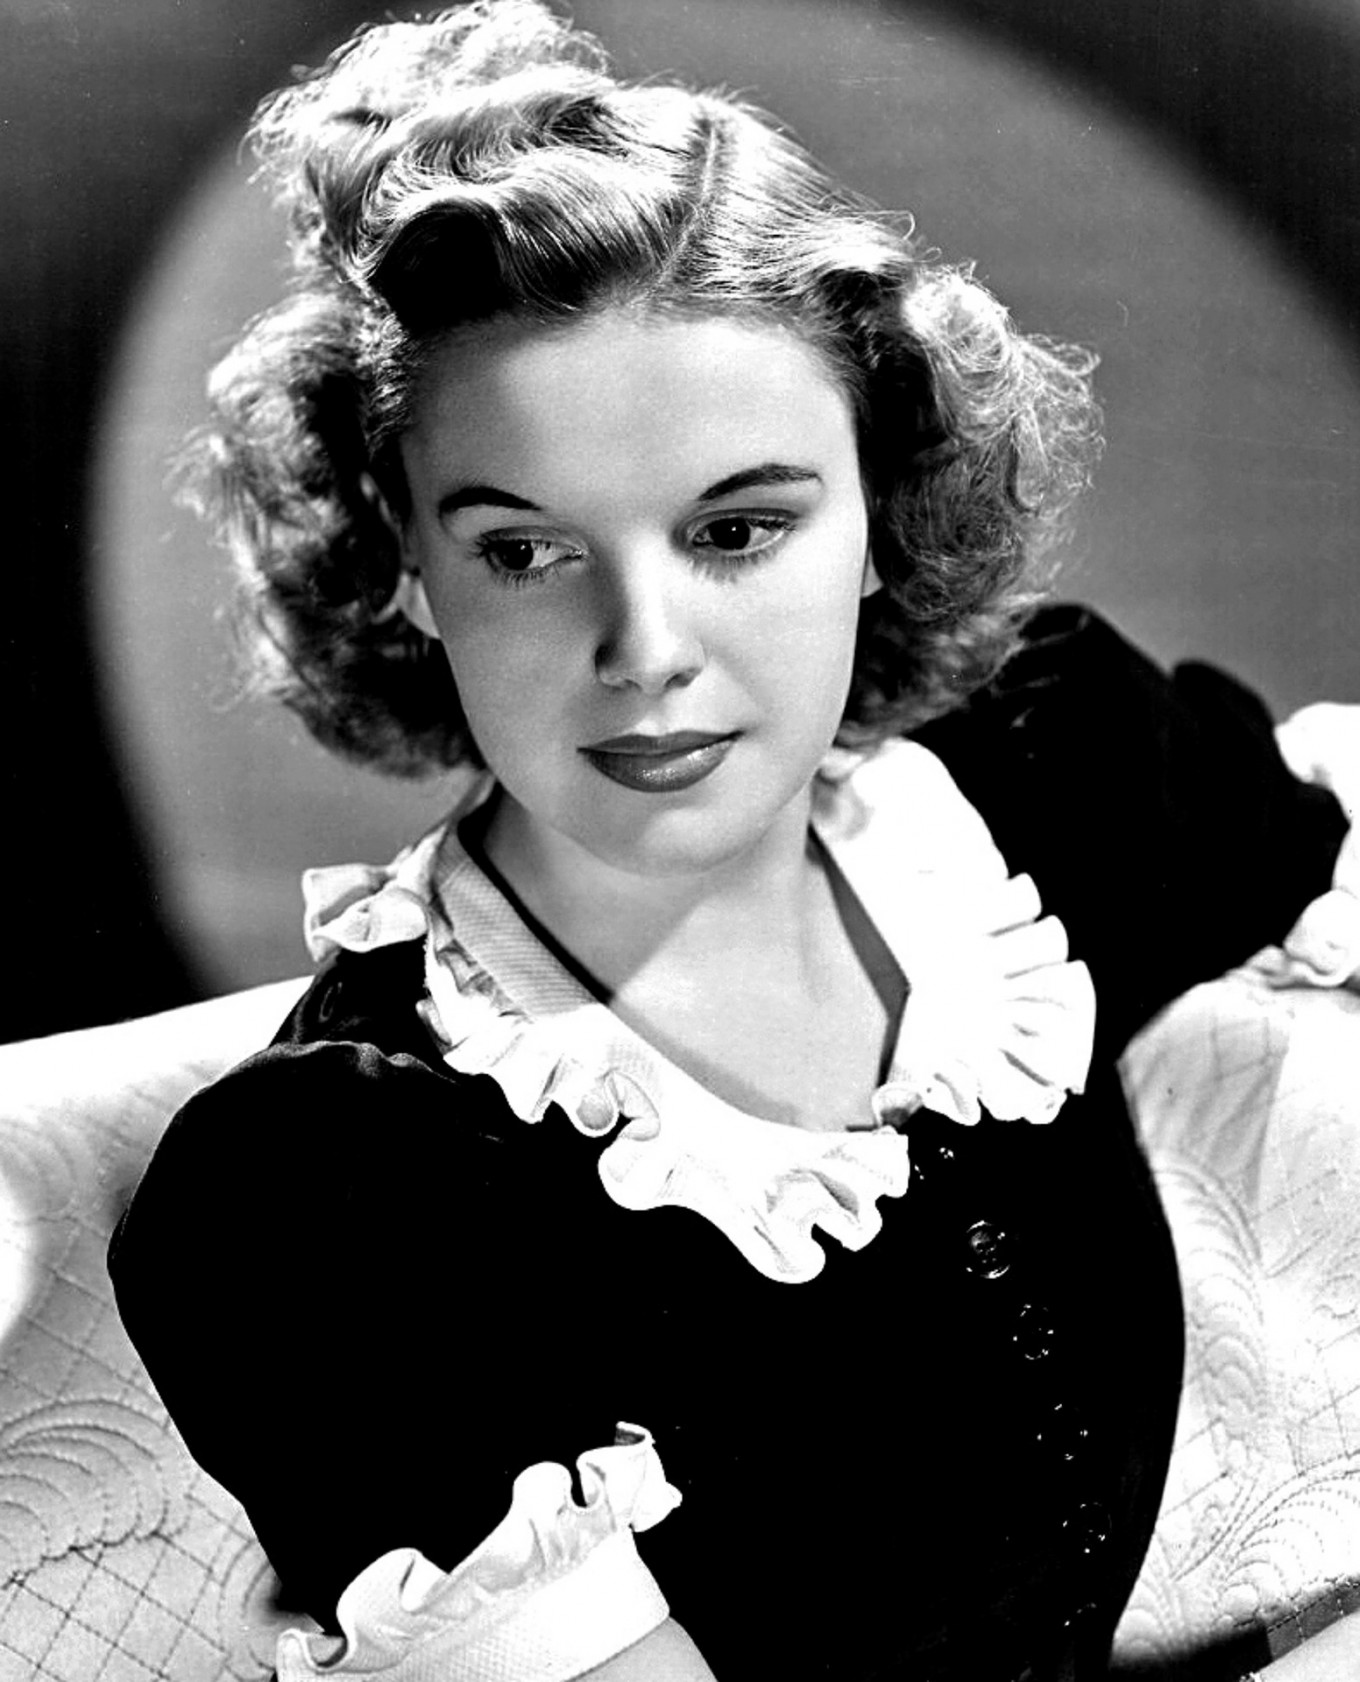 Judy Garland was one of Hollywood's greatest stars of the mid-20th century. PIXABAY